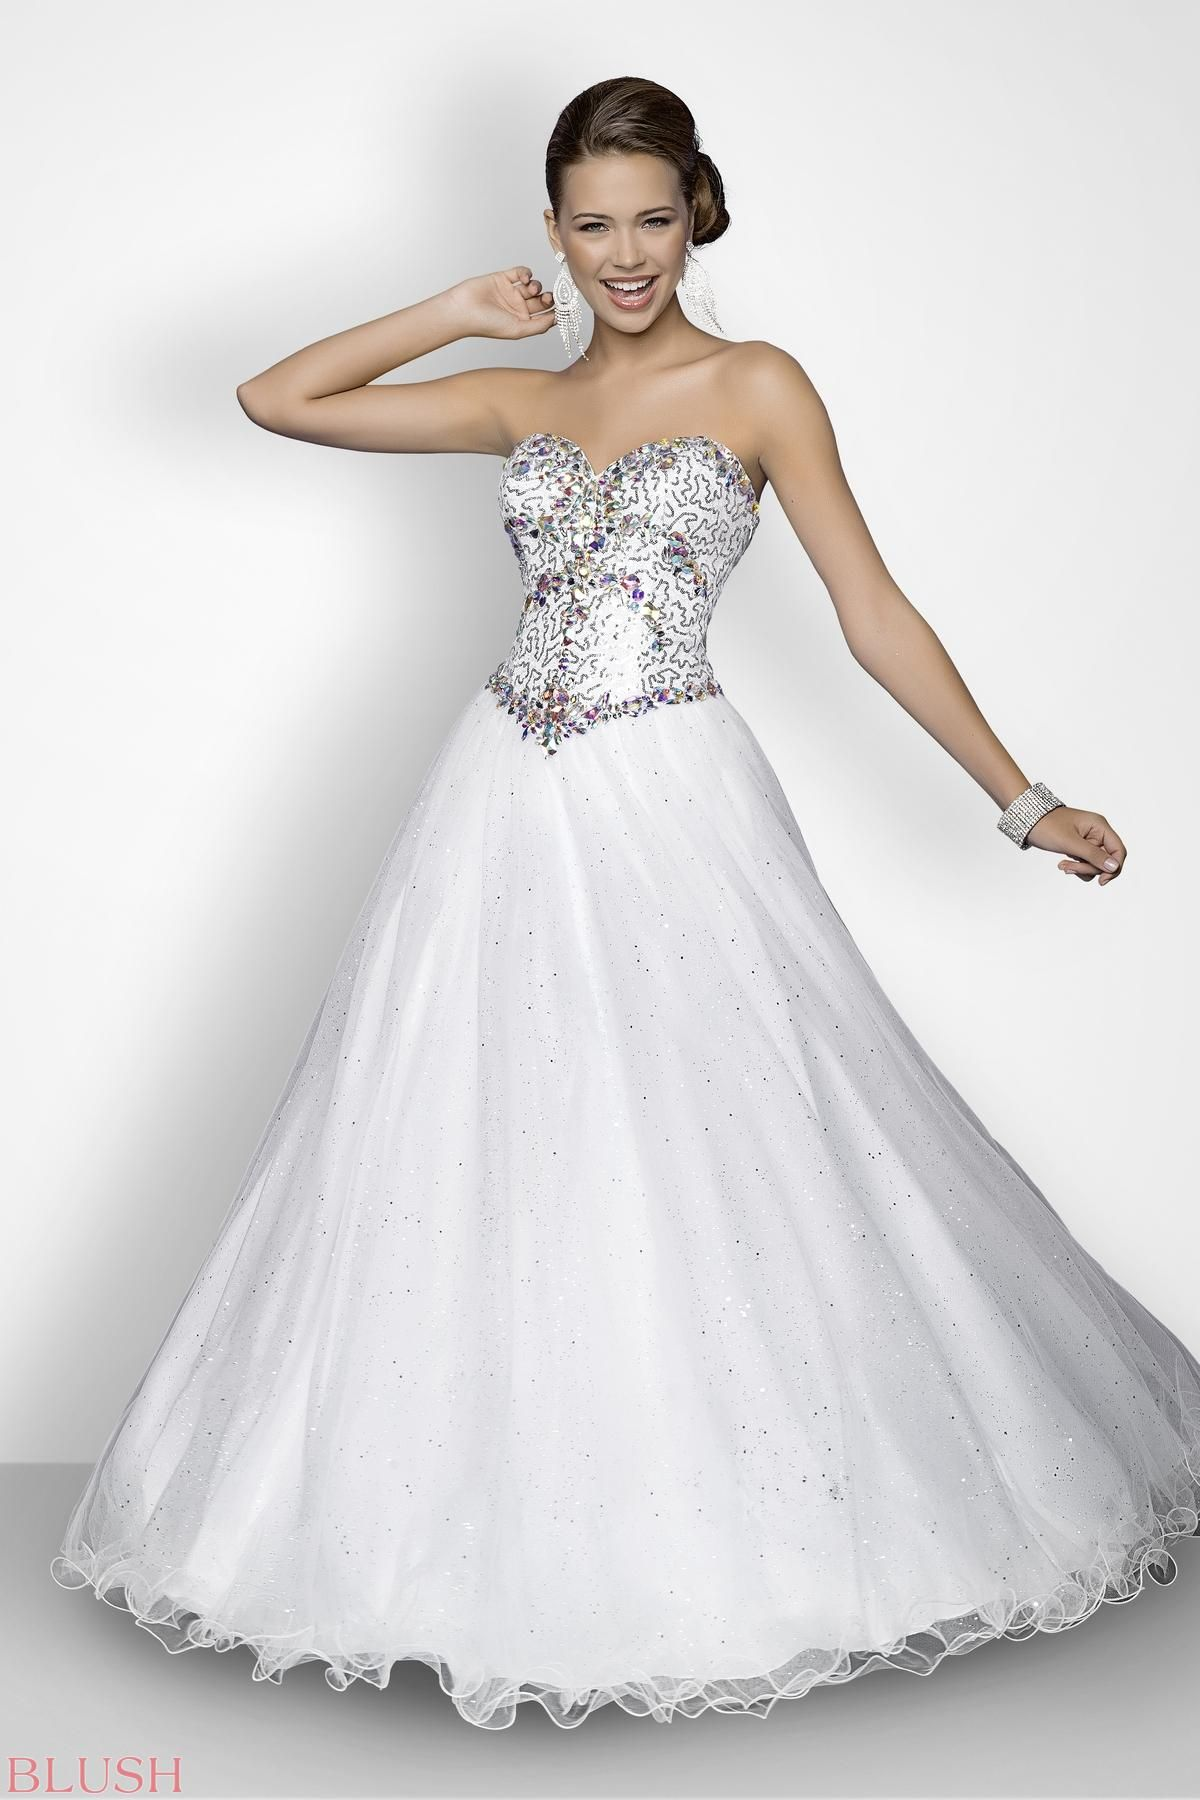 Mini white wedding dress  Beaded stones rock in this sexy prom dress Gorgeous jewels and mini